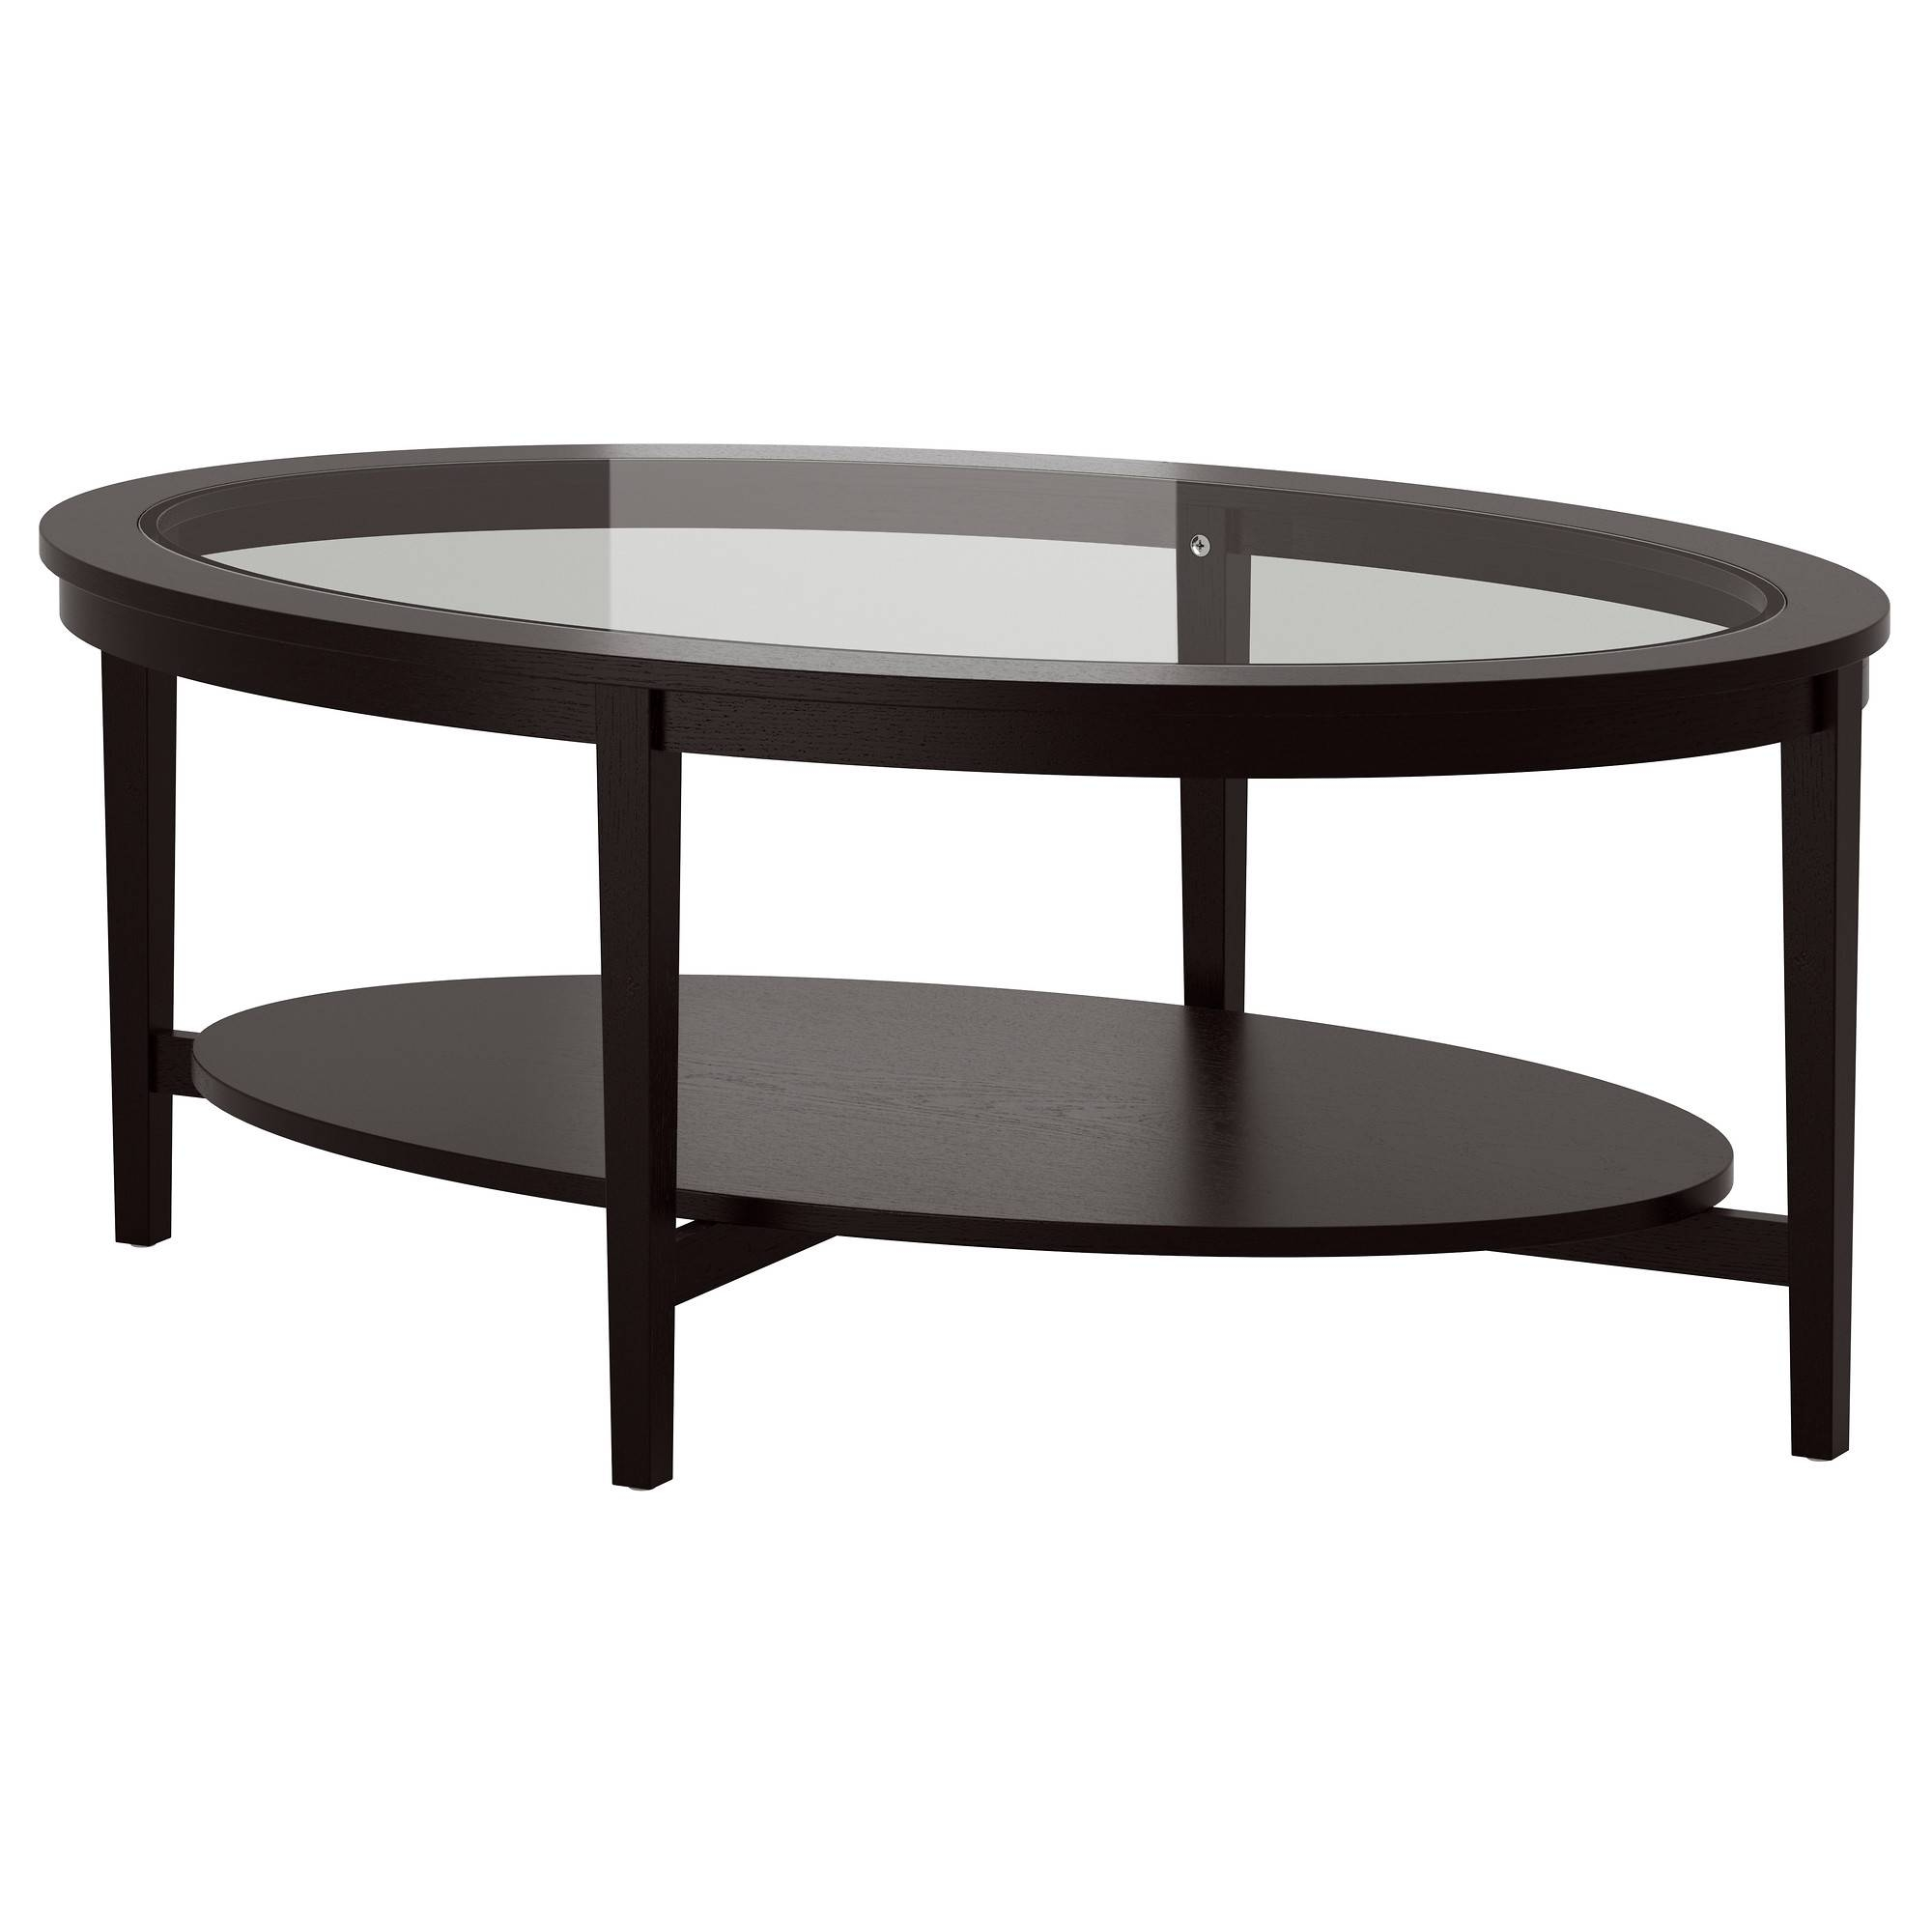 Coffee Tables & Console Tables - Ikea regarding Coffee Tables With Shelves (Image 10 of 30)